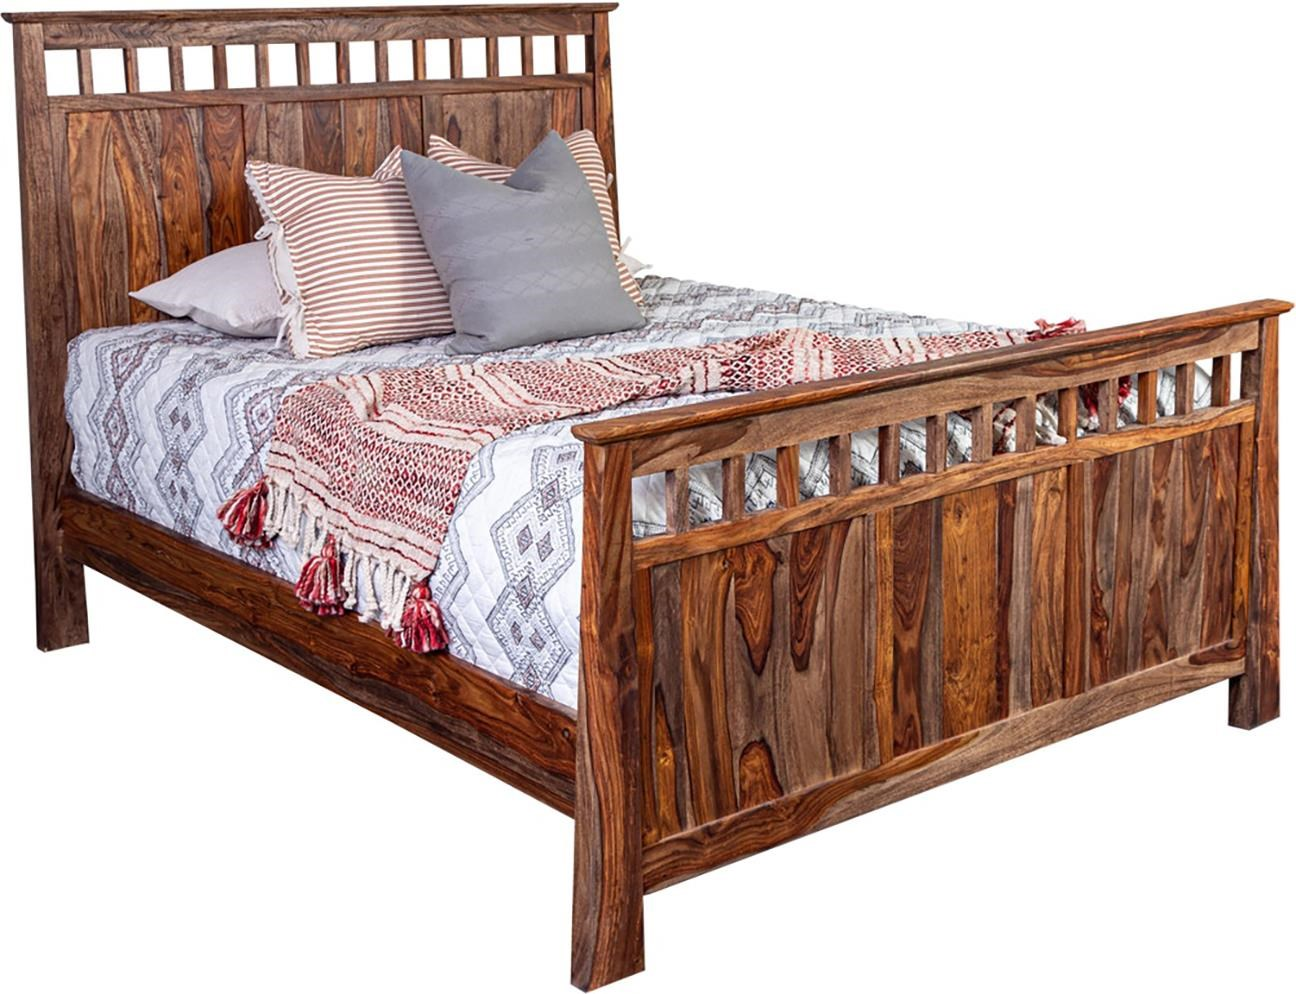 Queen Panel Bed at Sadler's Home Furnishings